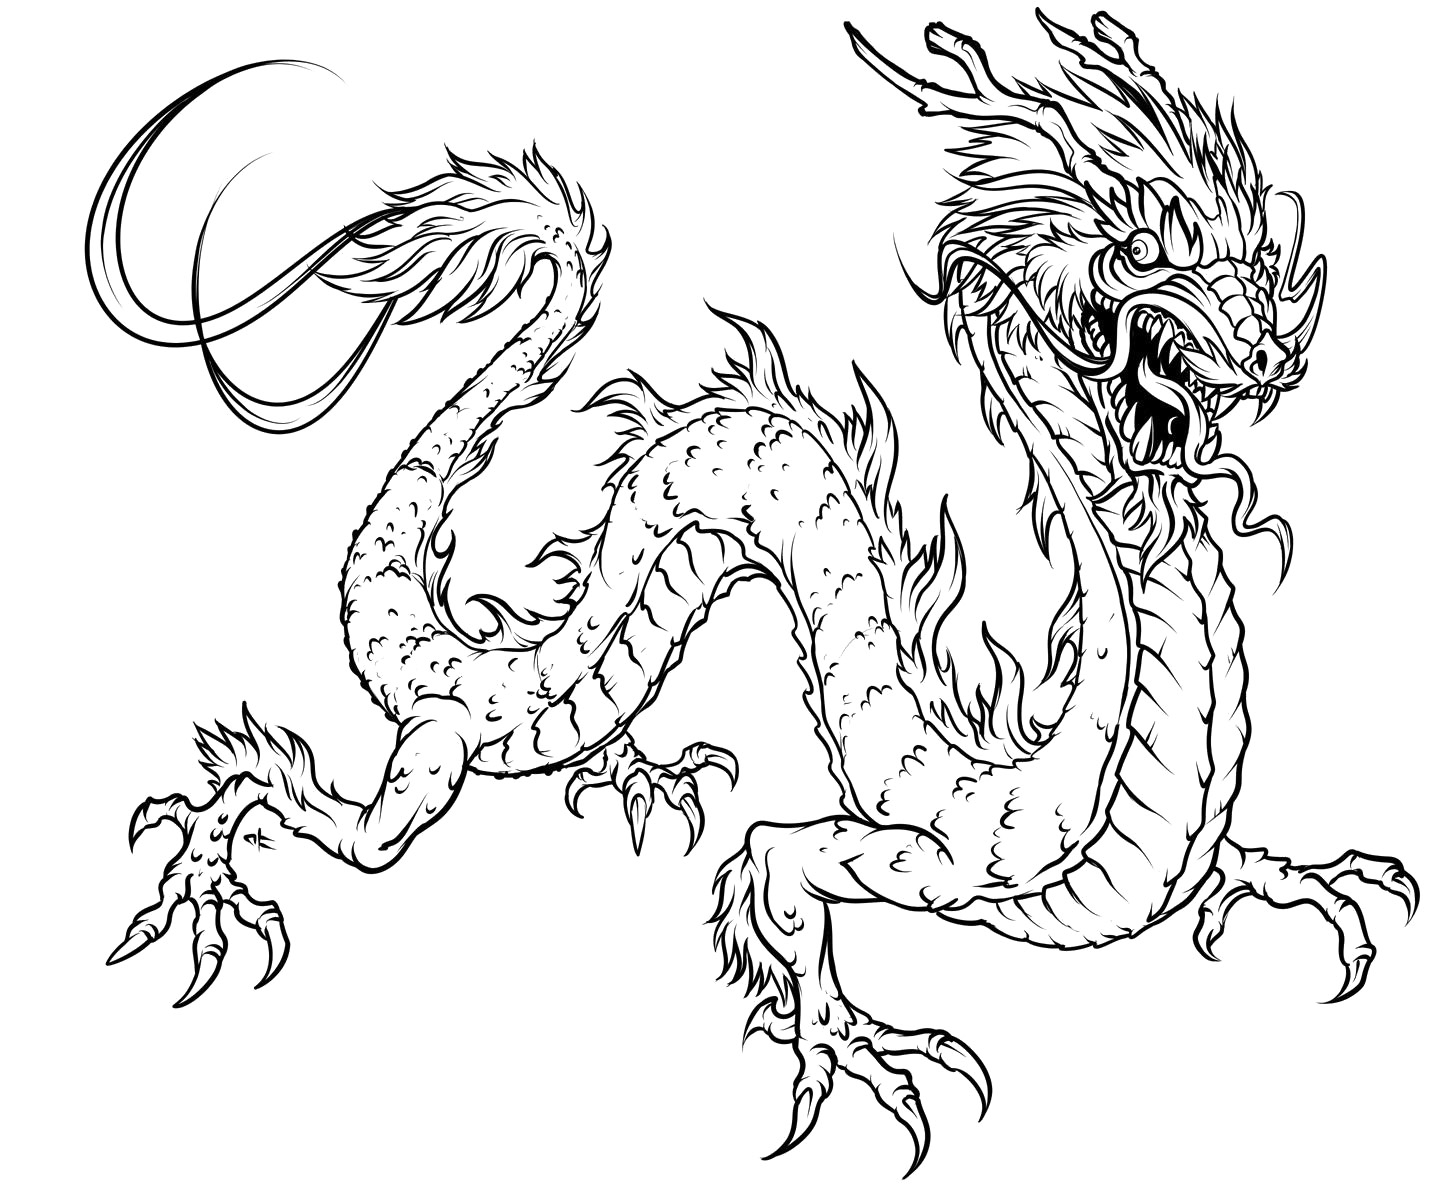 Dragon Coloring Pages For Adults Printable : Dragon coloring pages for adults to download and print for free